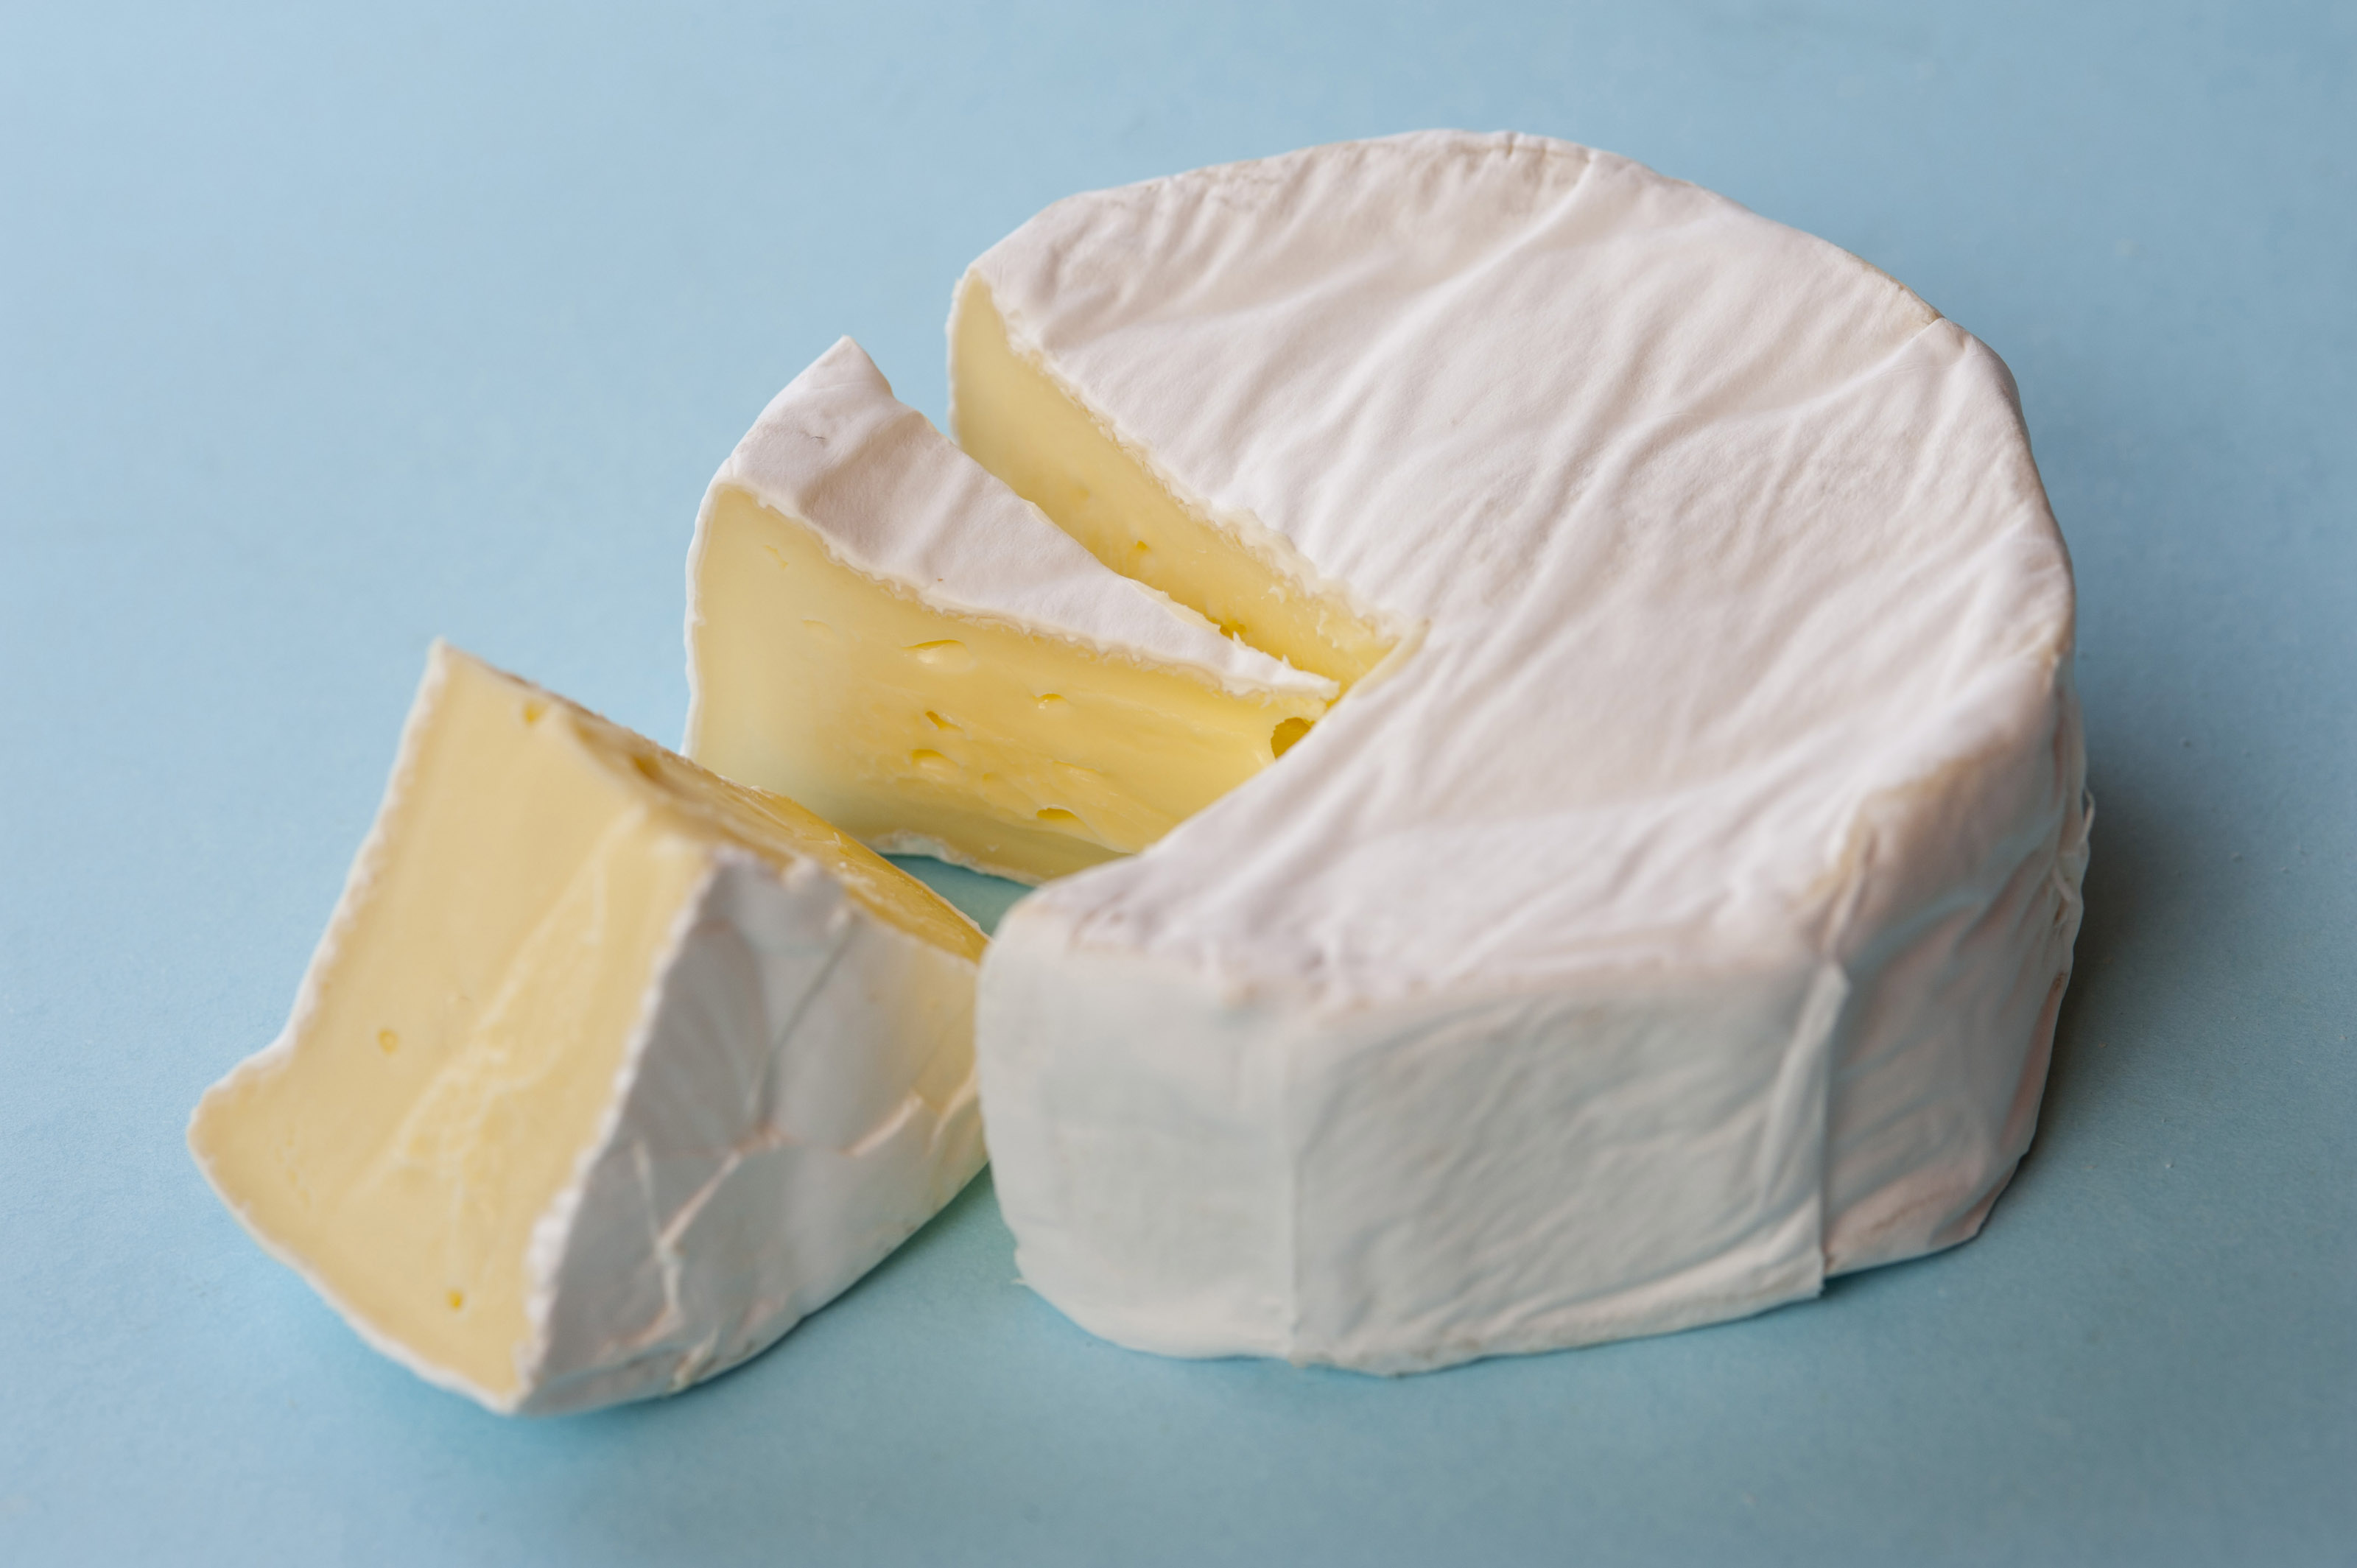 Round of mature soft brie cheese with two wedges removed to display the centre